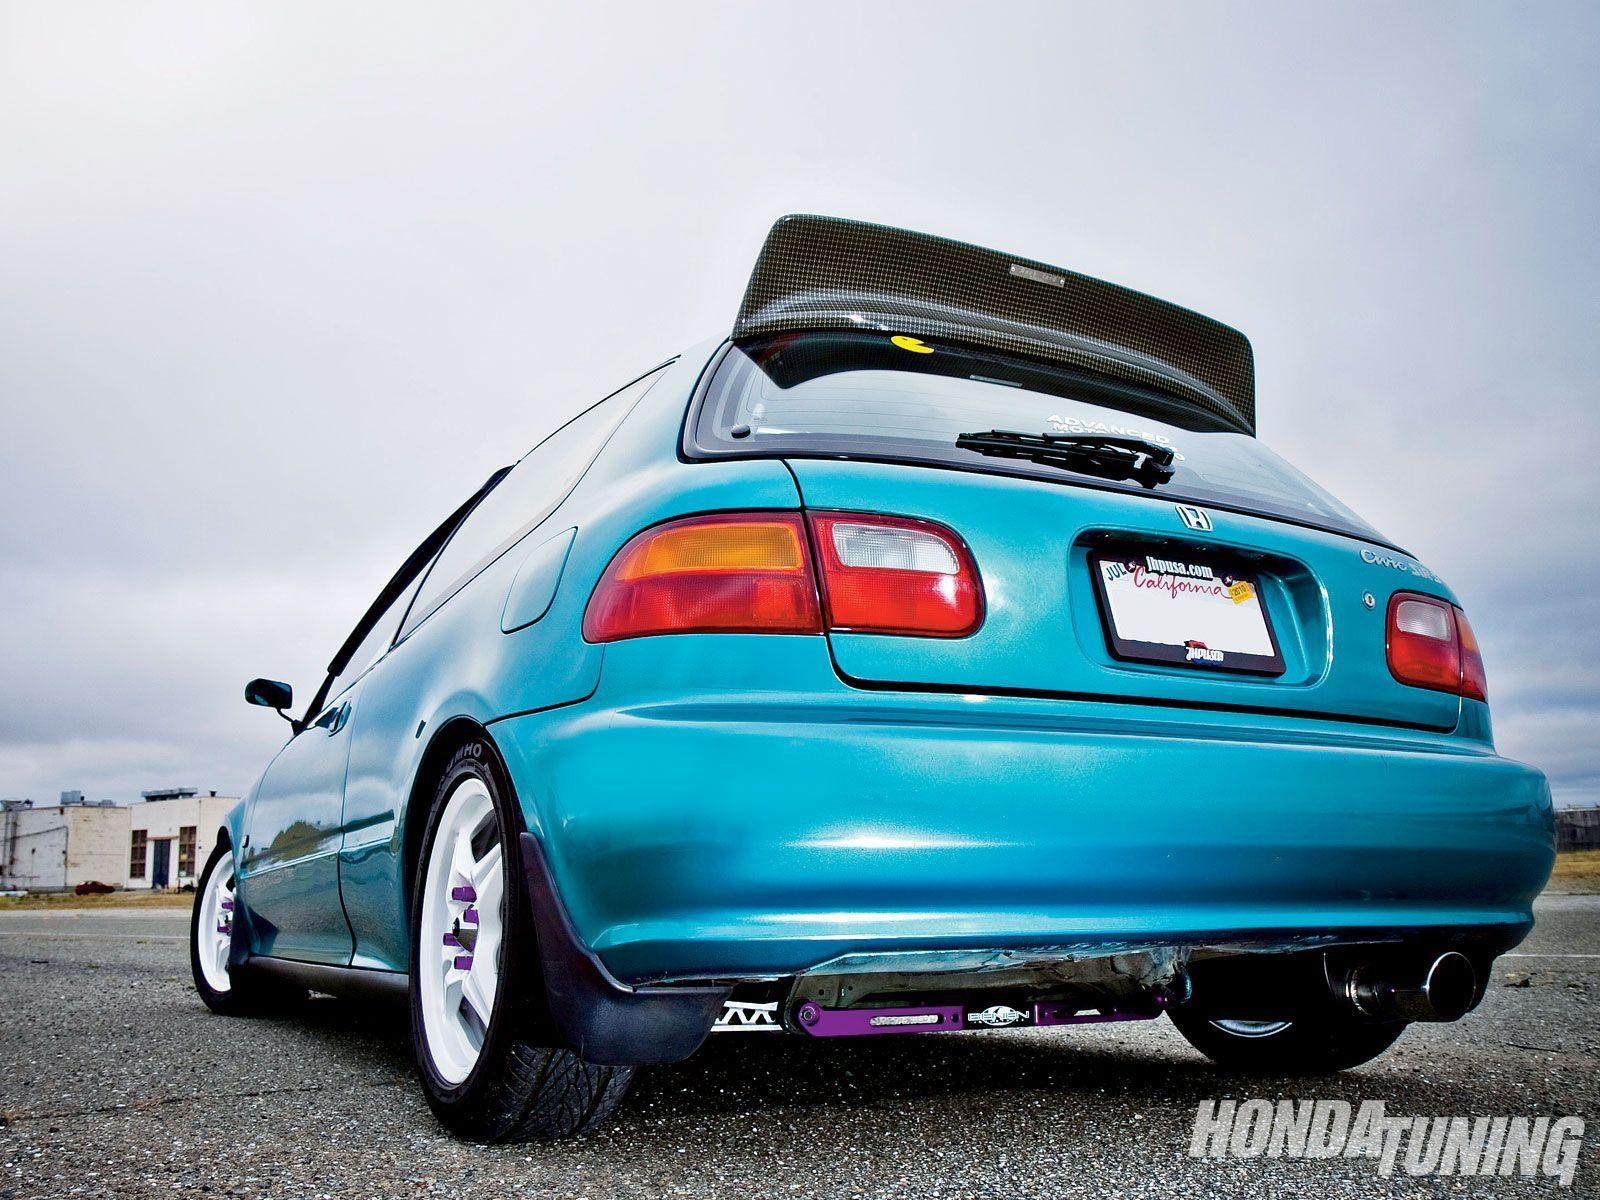 1992 Honda Civic Hatchback